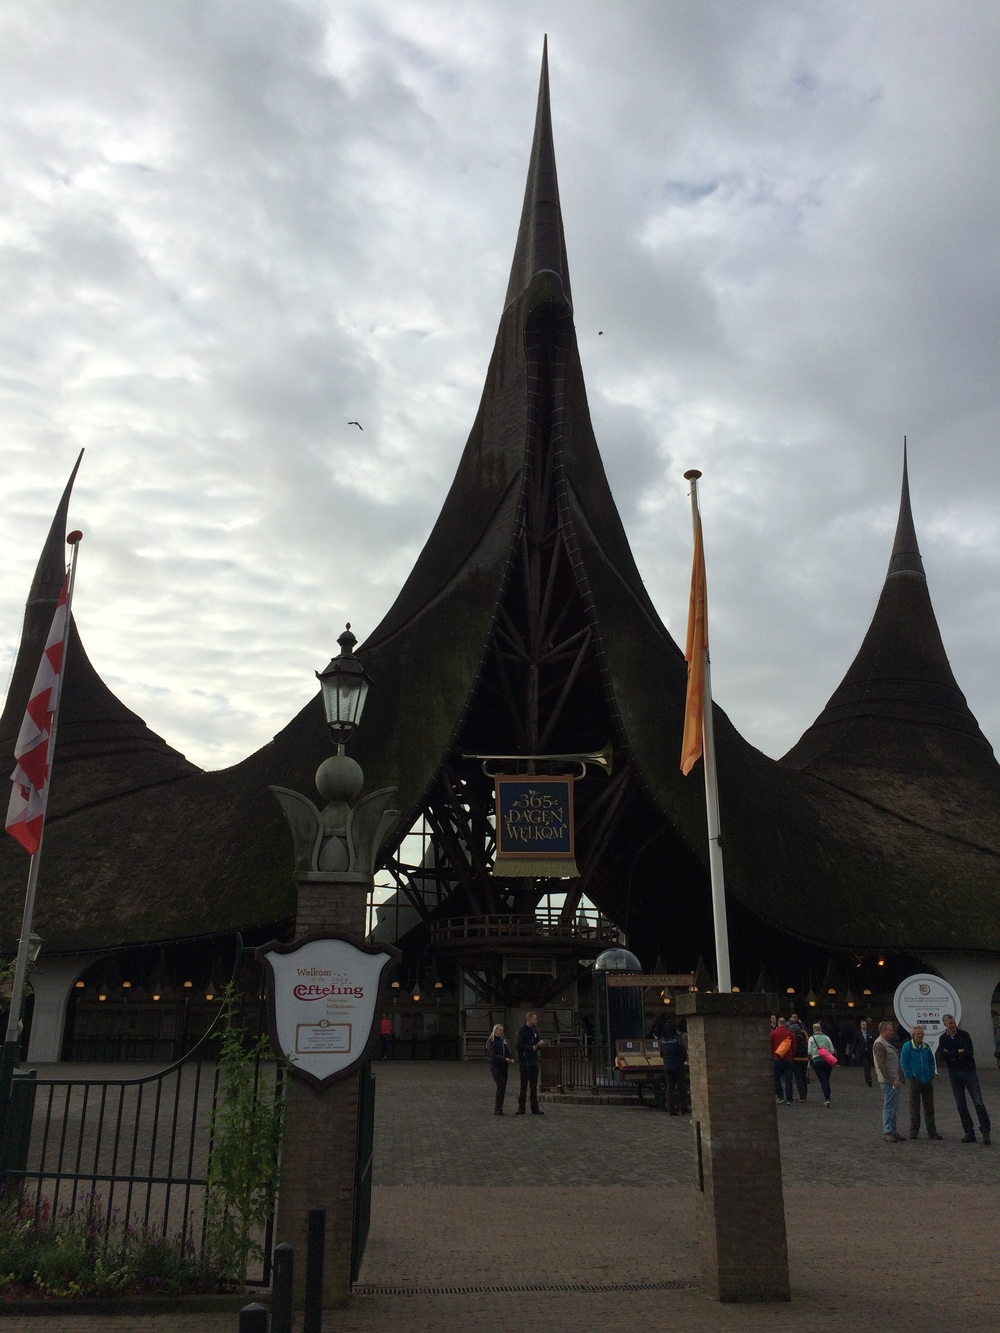 Efteling Main Entrance - The House of the Five Senses (Het Huis van de Vijf Zintuigen)